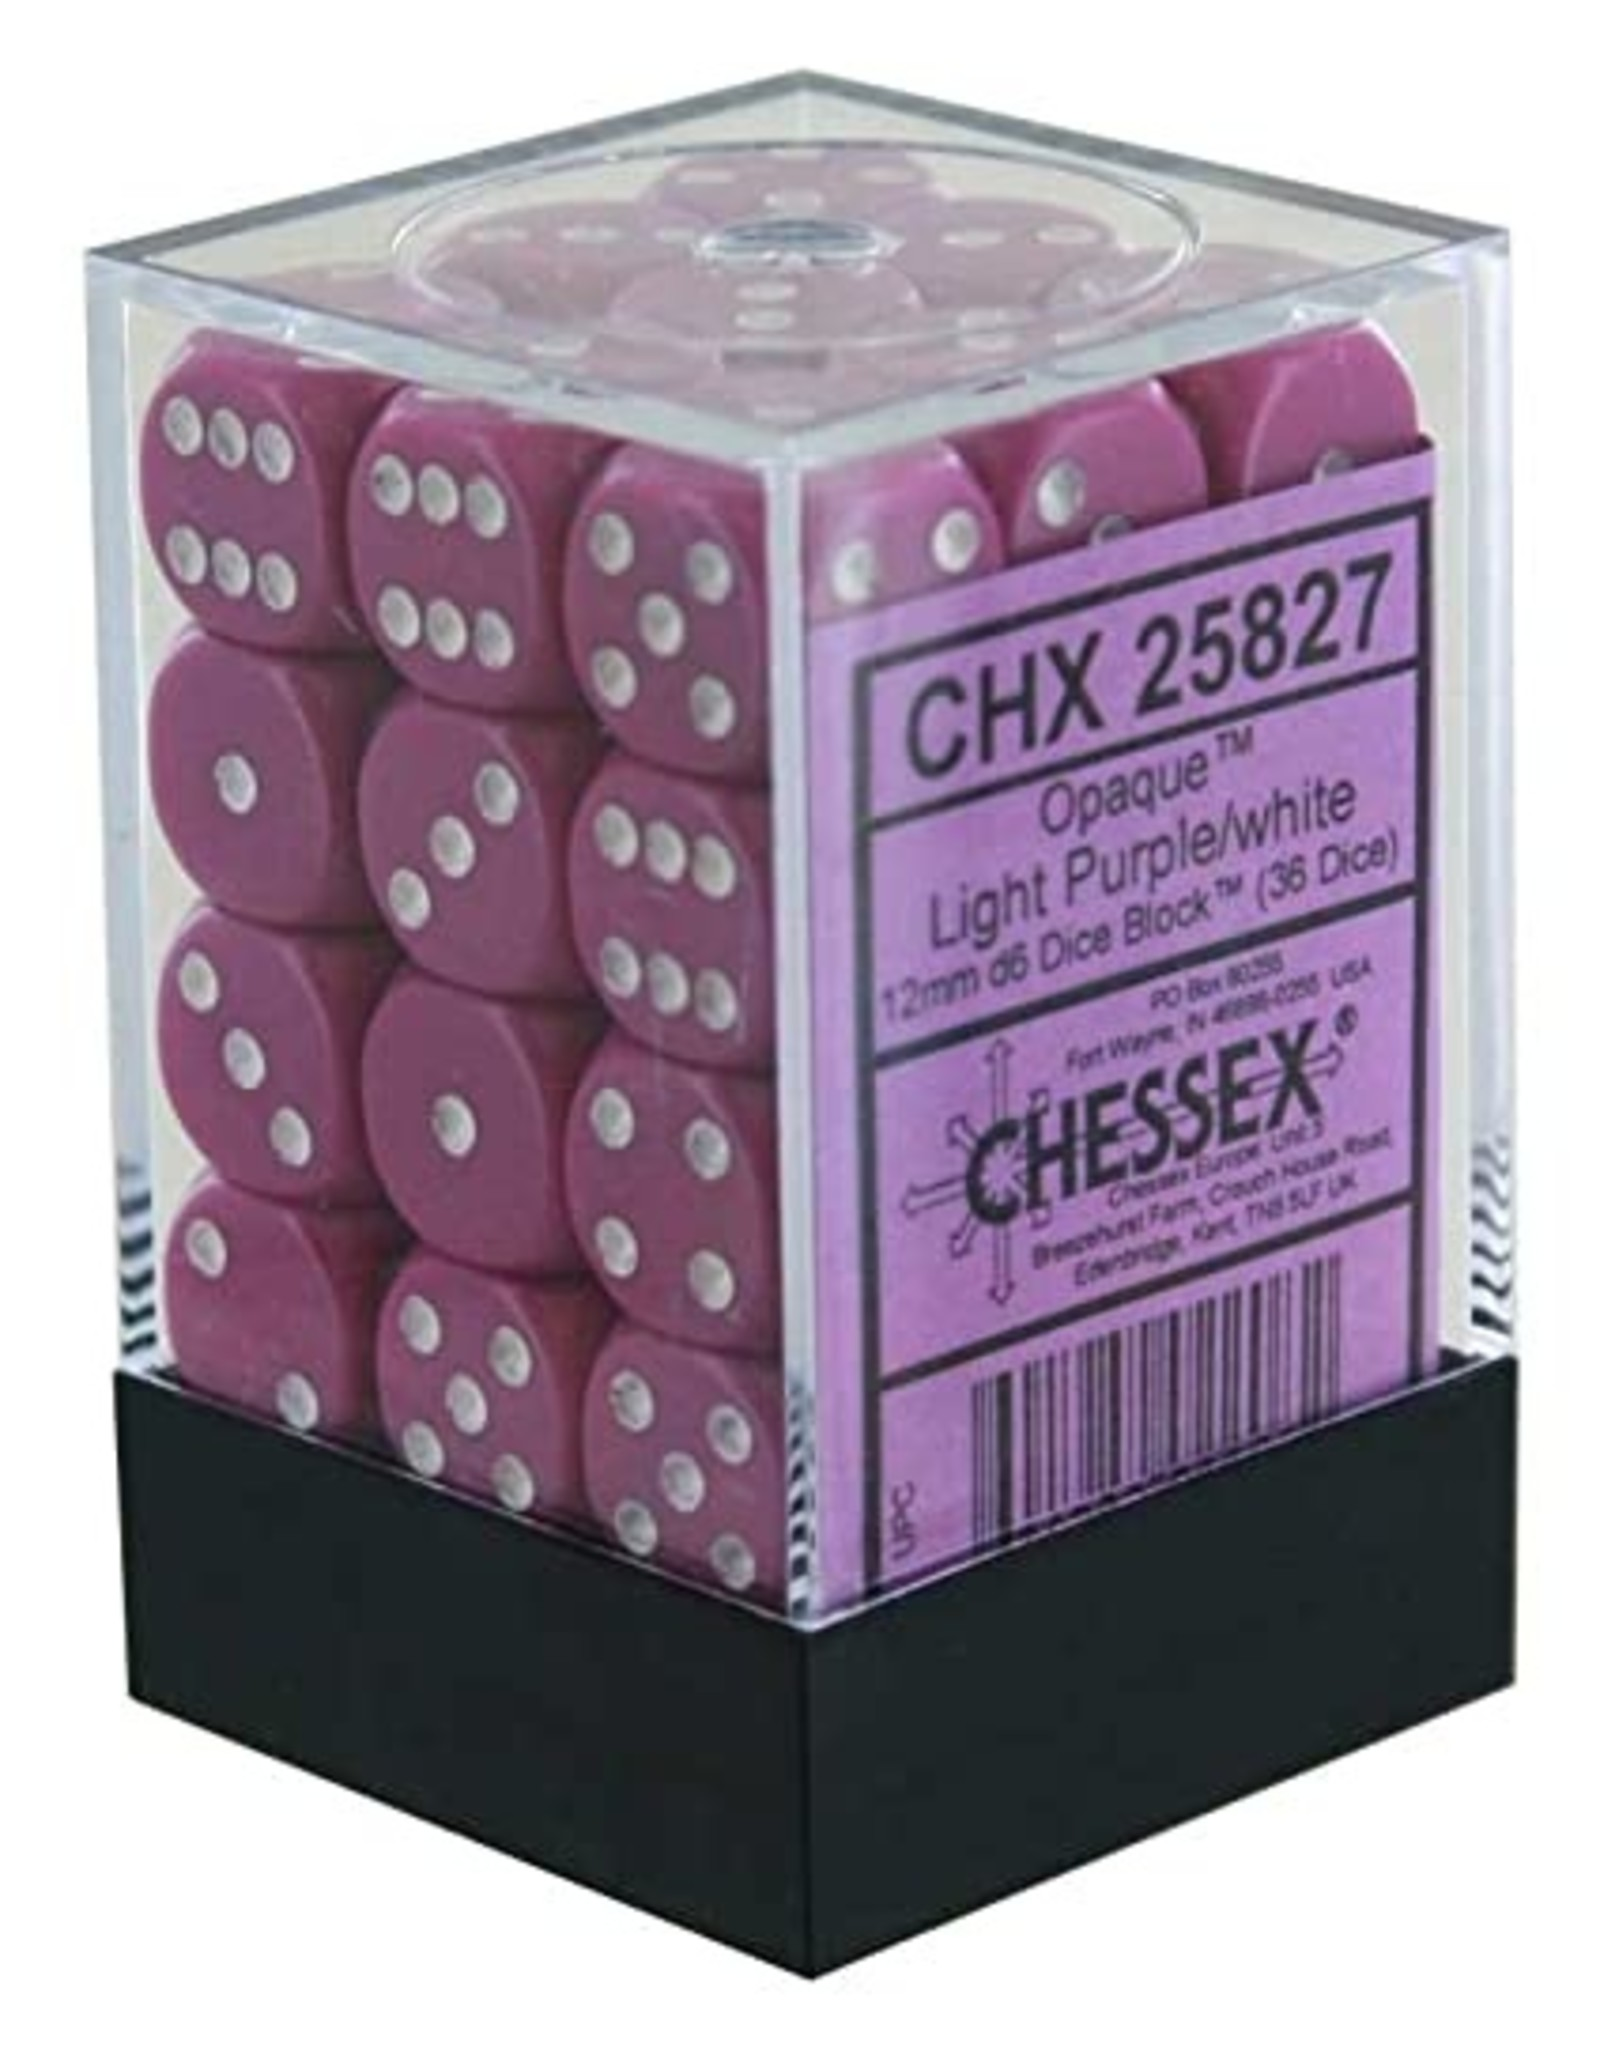 Chessex CHX 25827 Light Purple w/White (36)